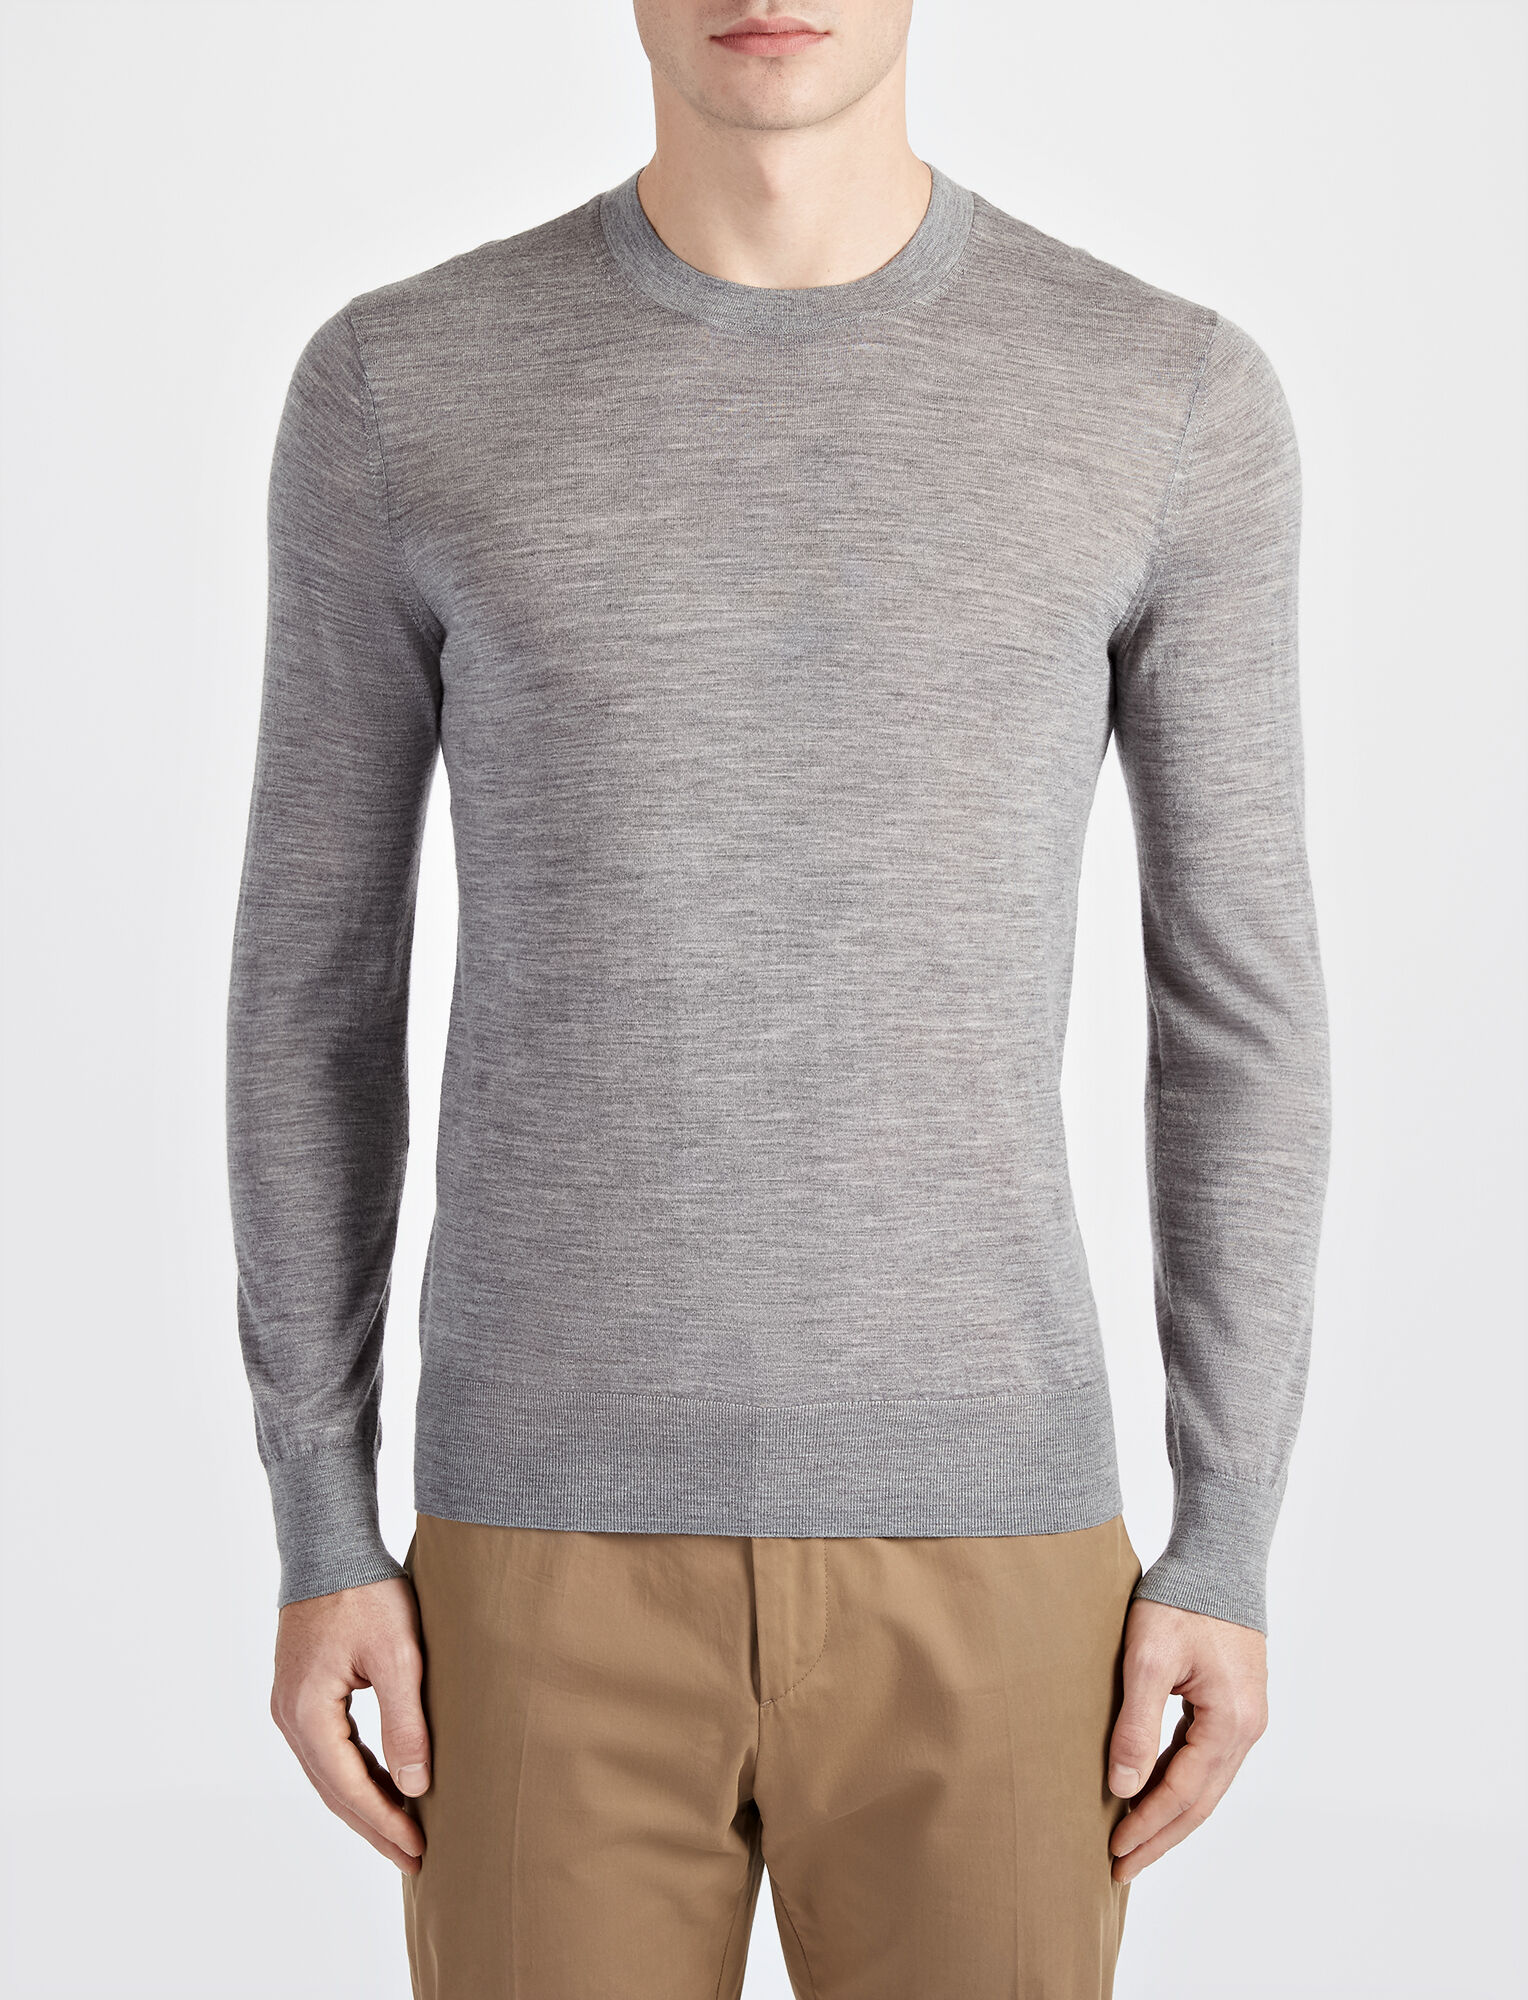 Joseph, Light Merinos Sweater, in GREY CHINE